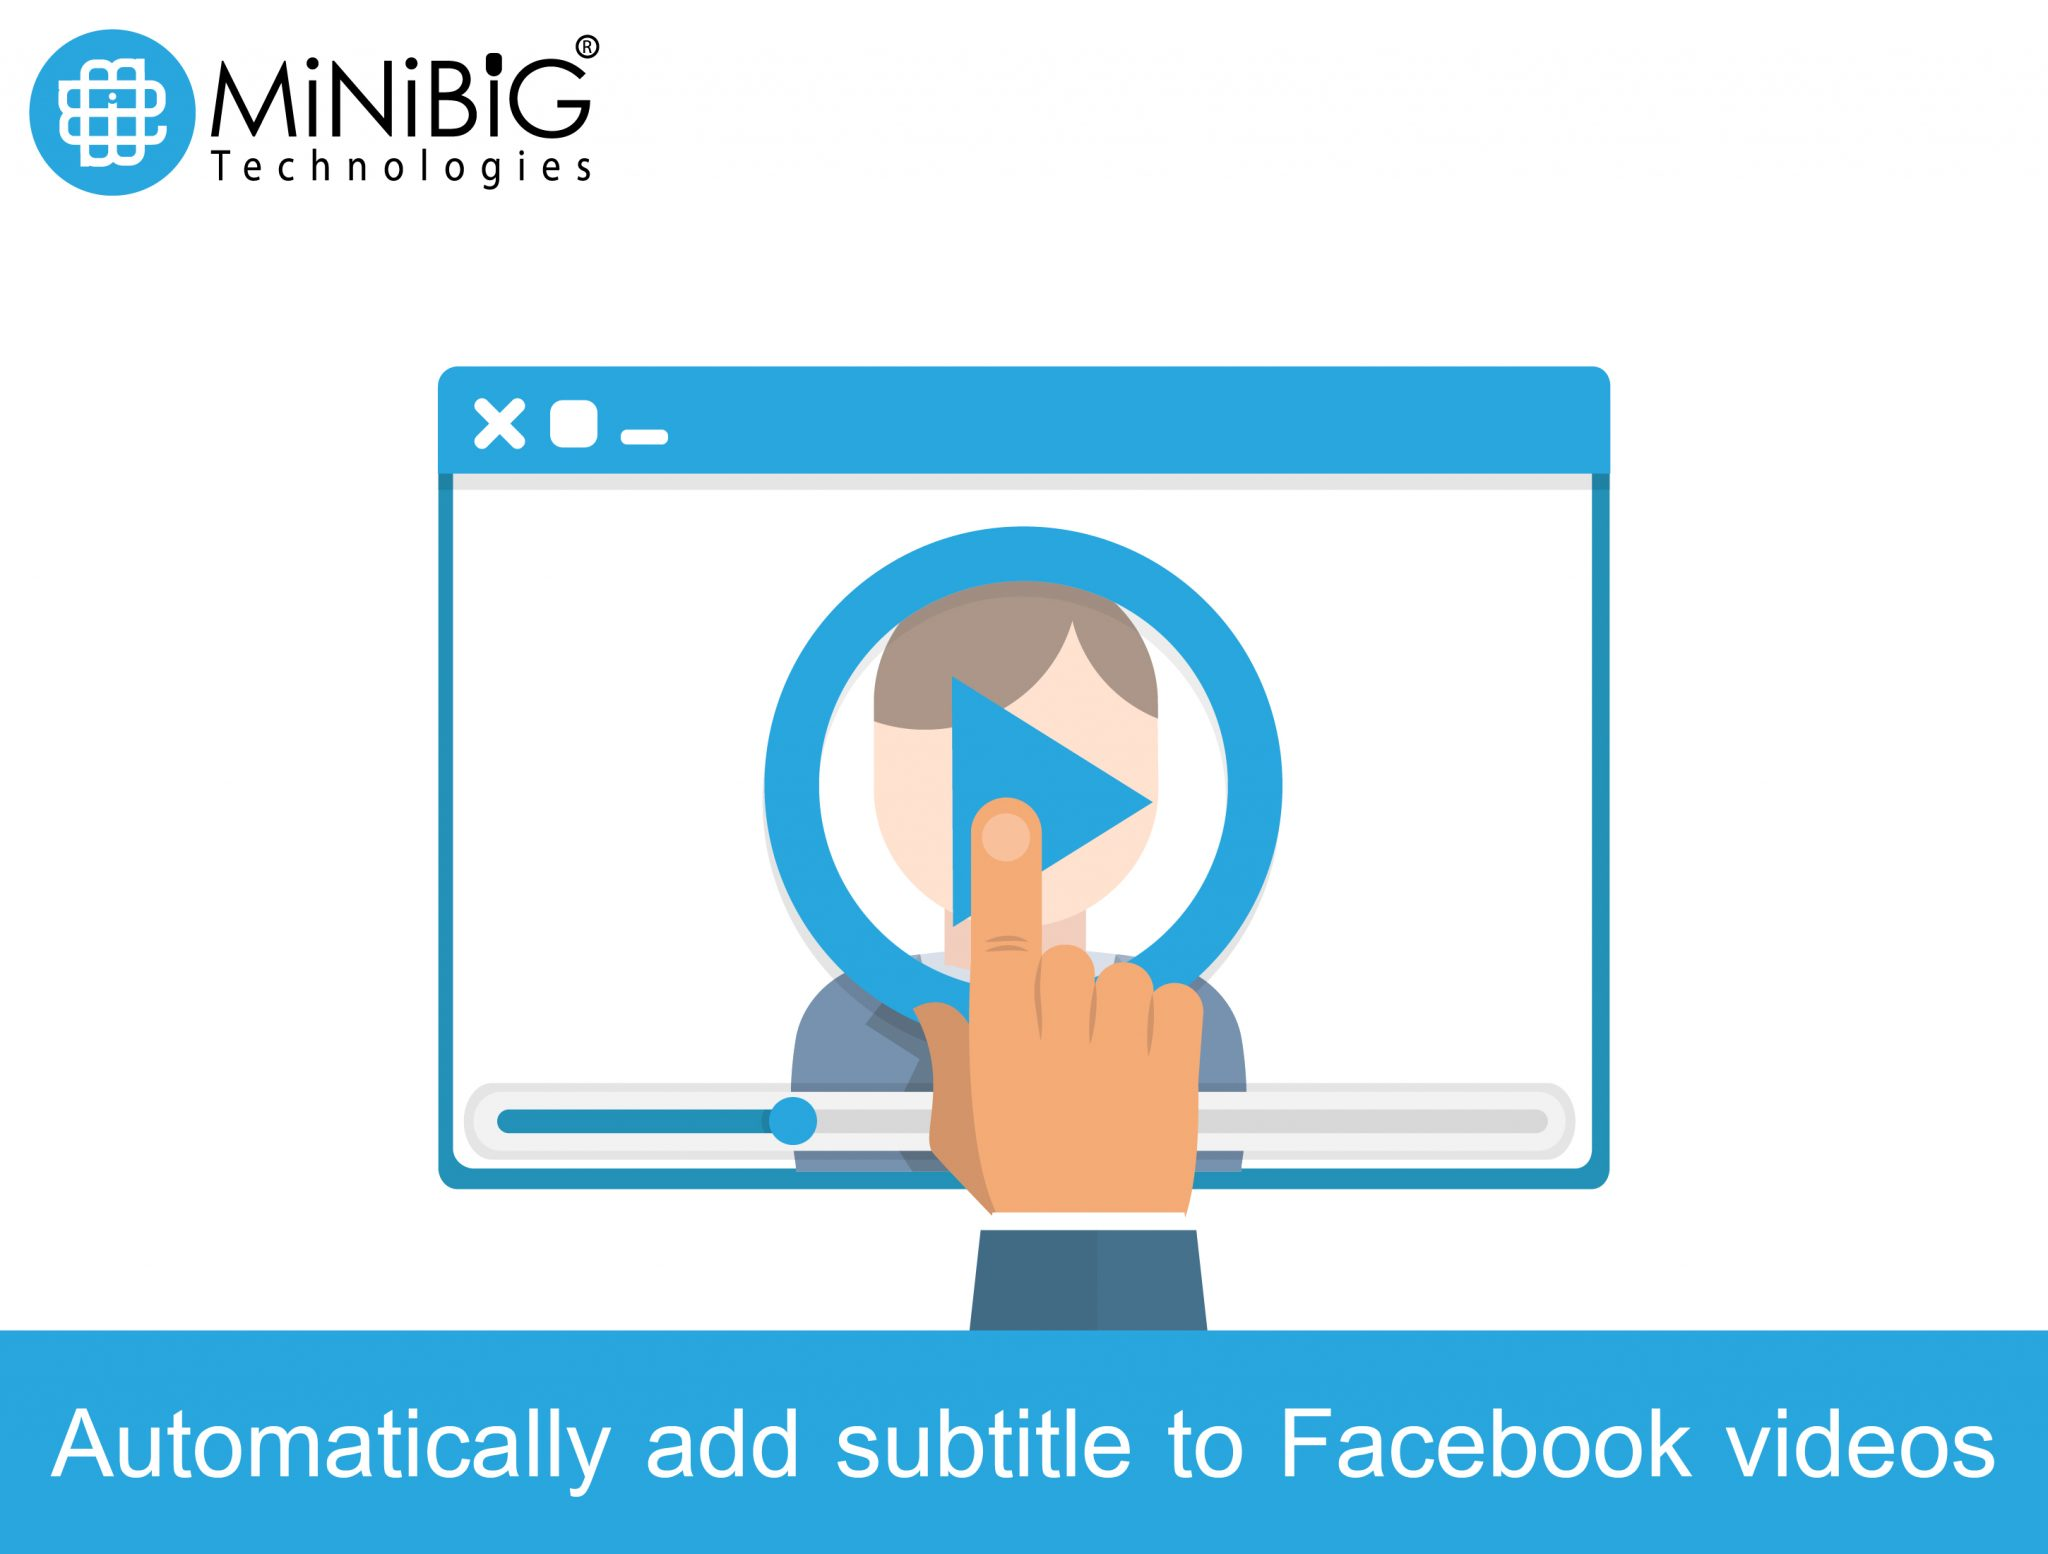 Automatically add captions/subtitle to Facebook videos